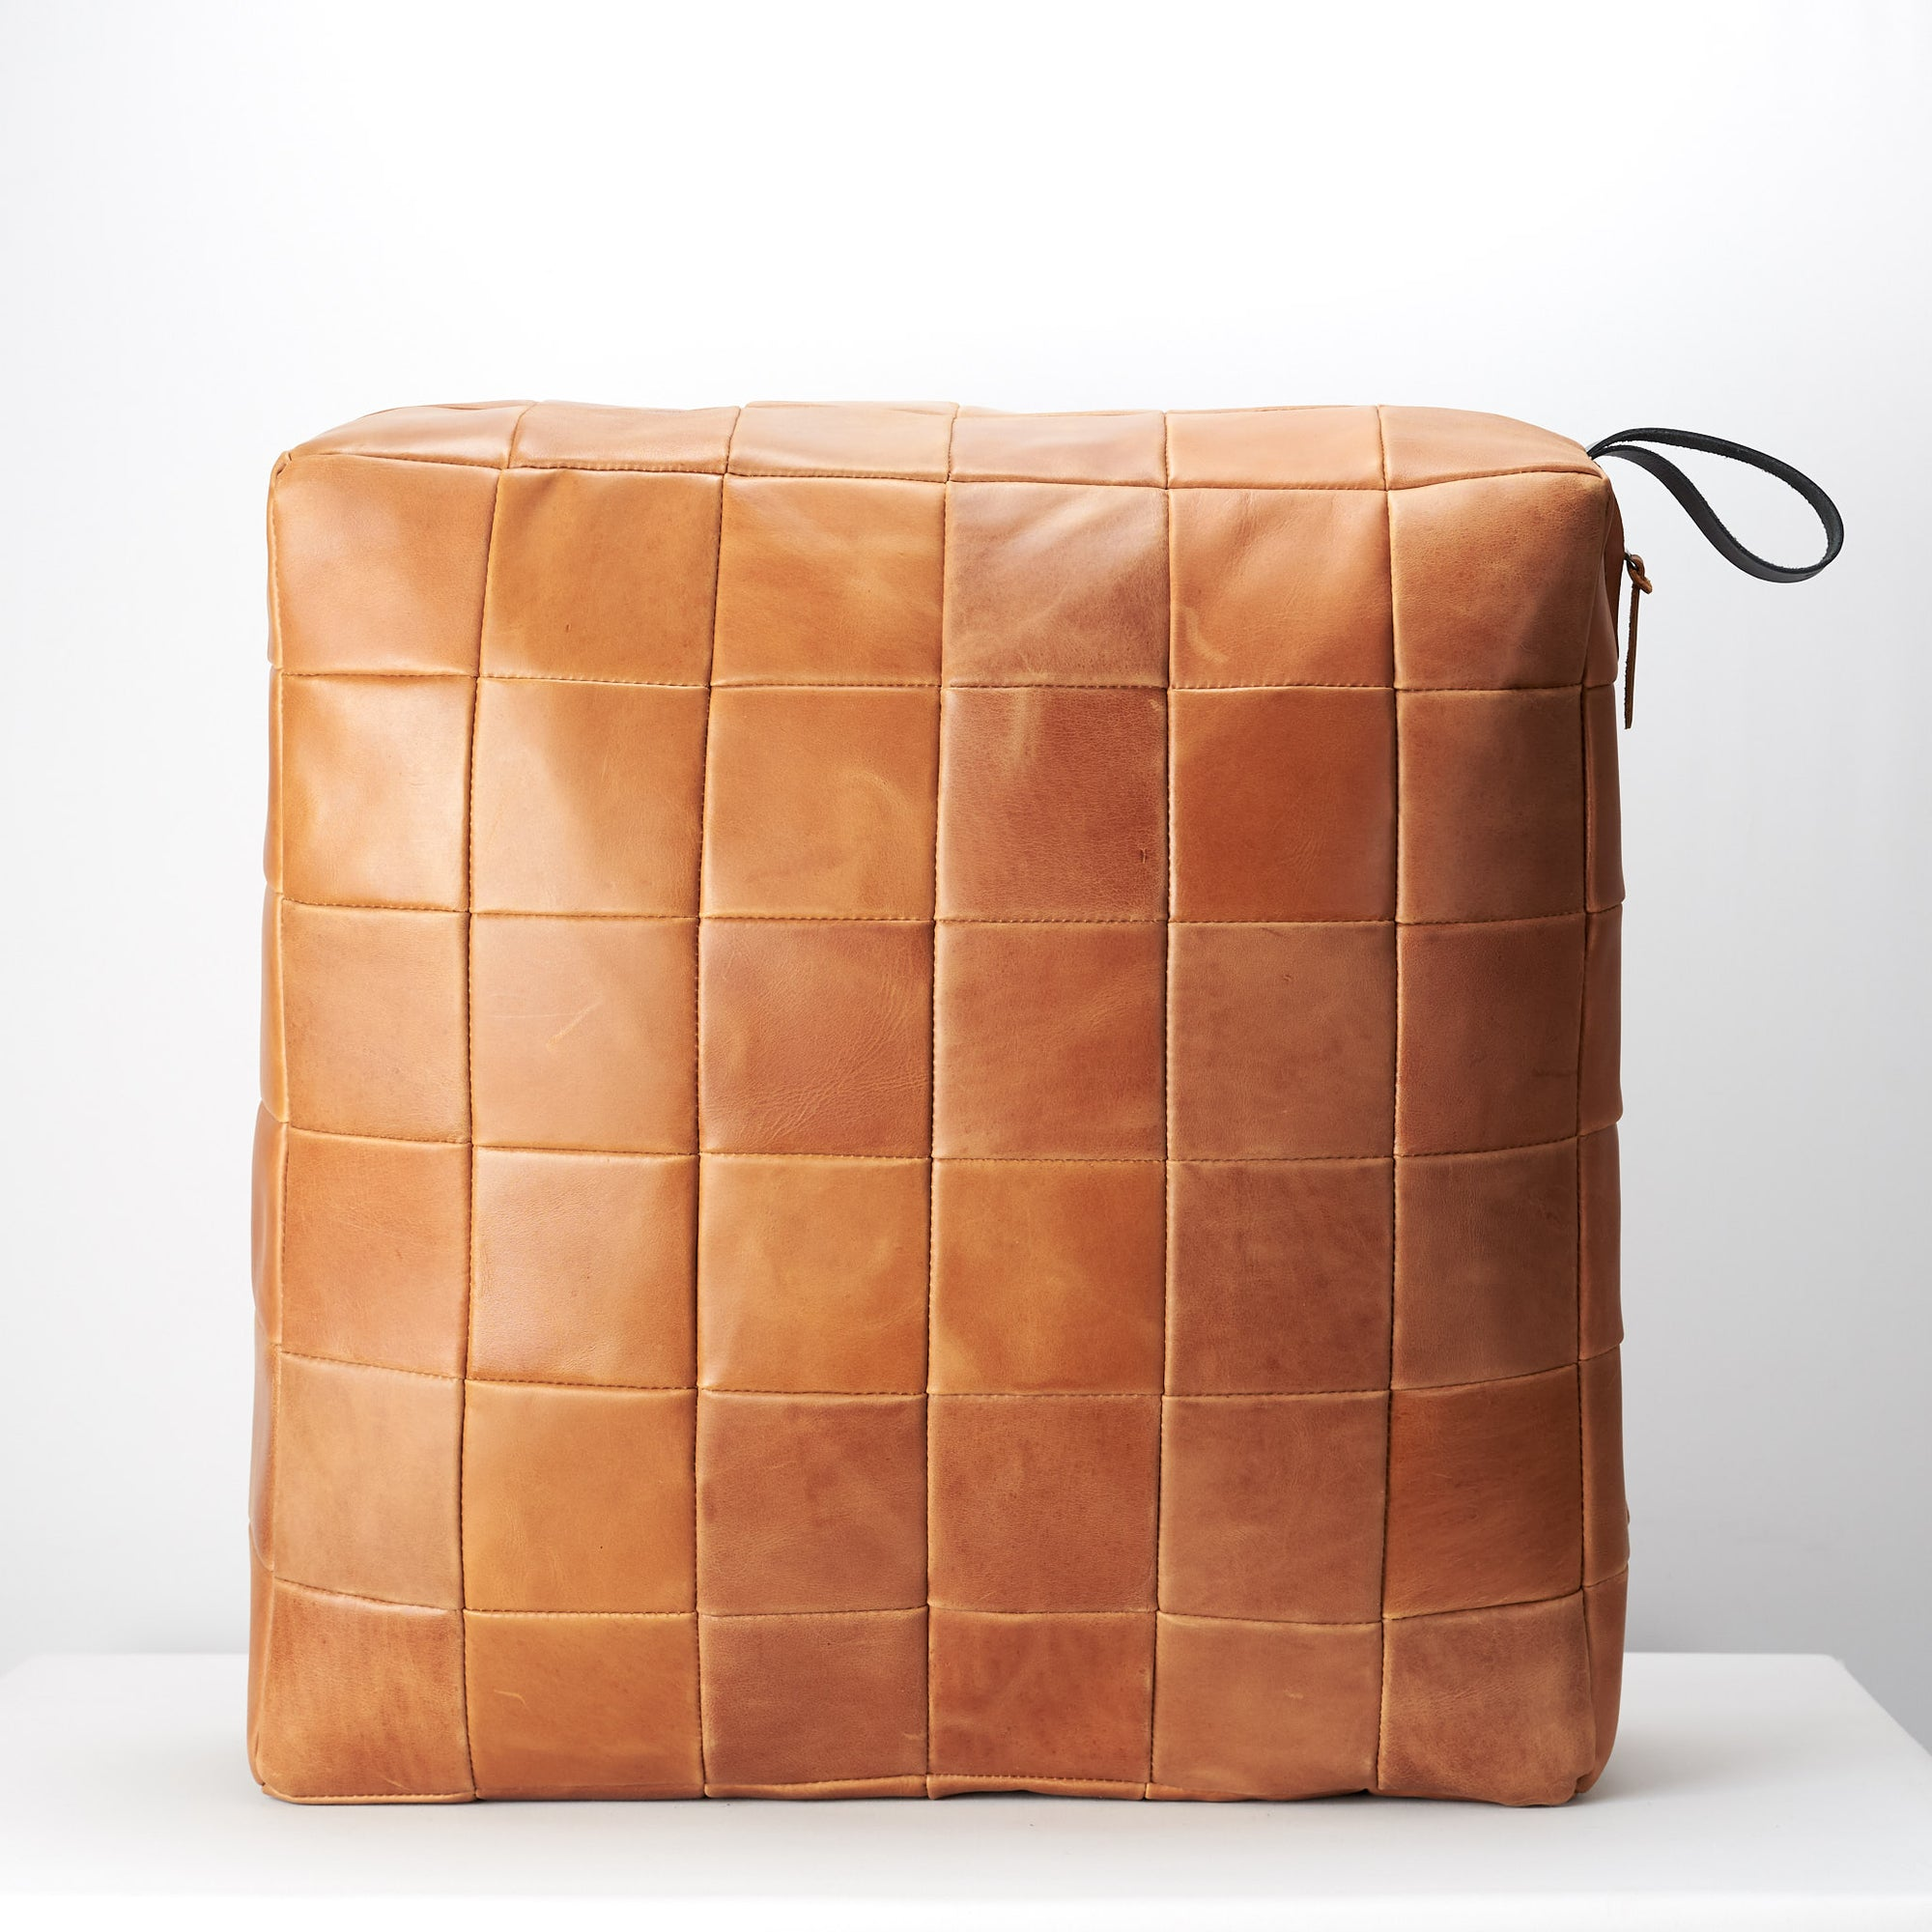 Tan Leather floor cushion pillow for indoors decoration.